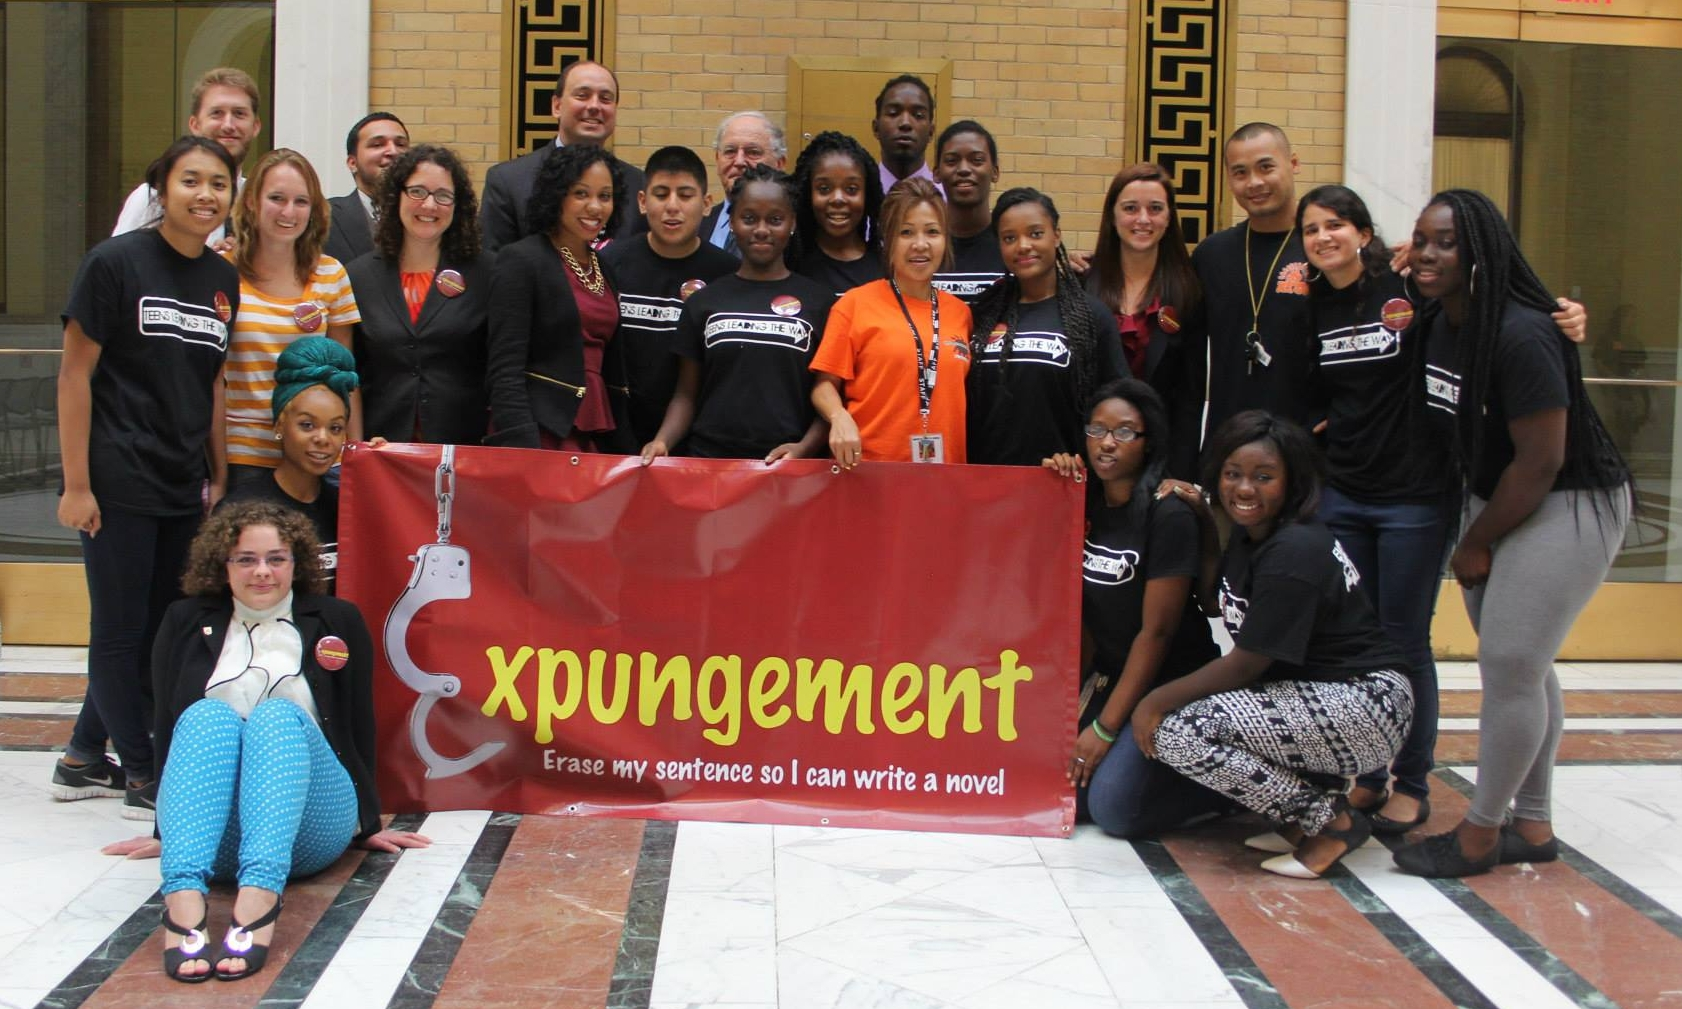 Sealing and Expungement - Getting Kids on the Right Track